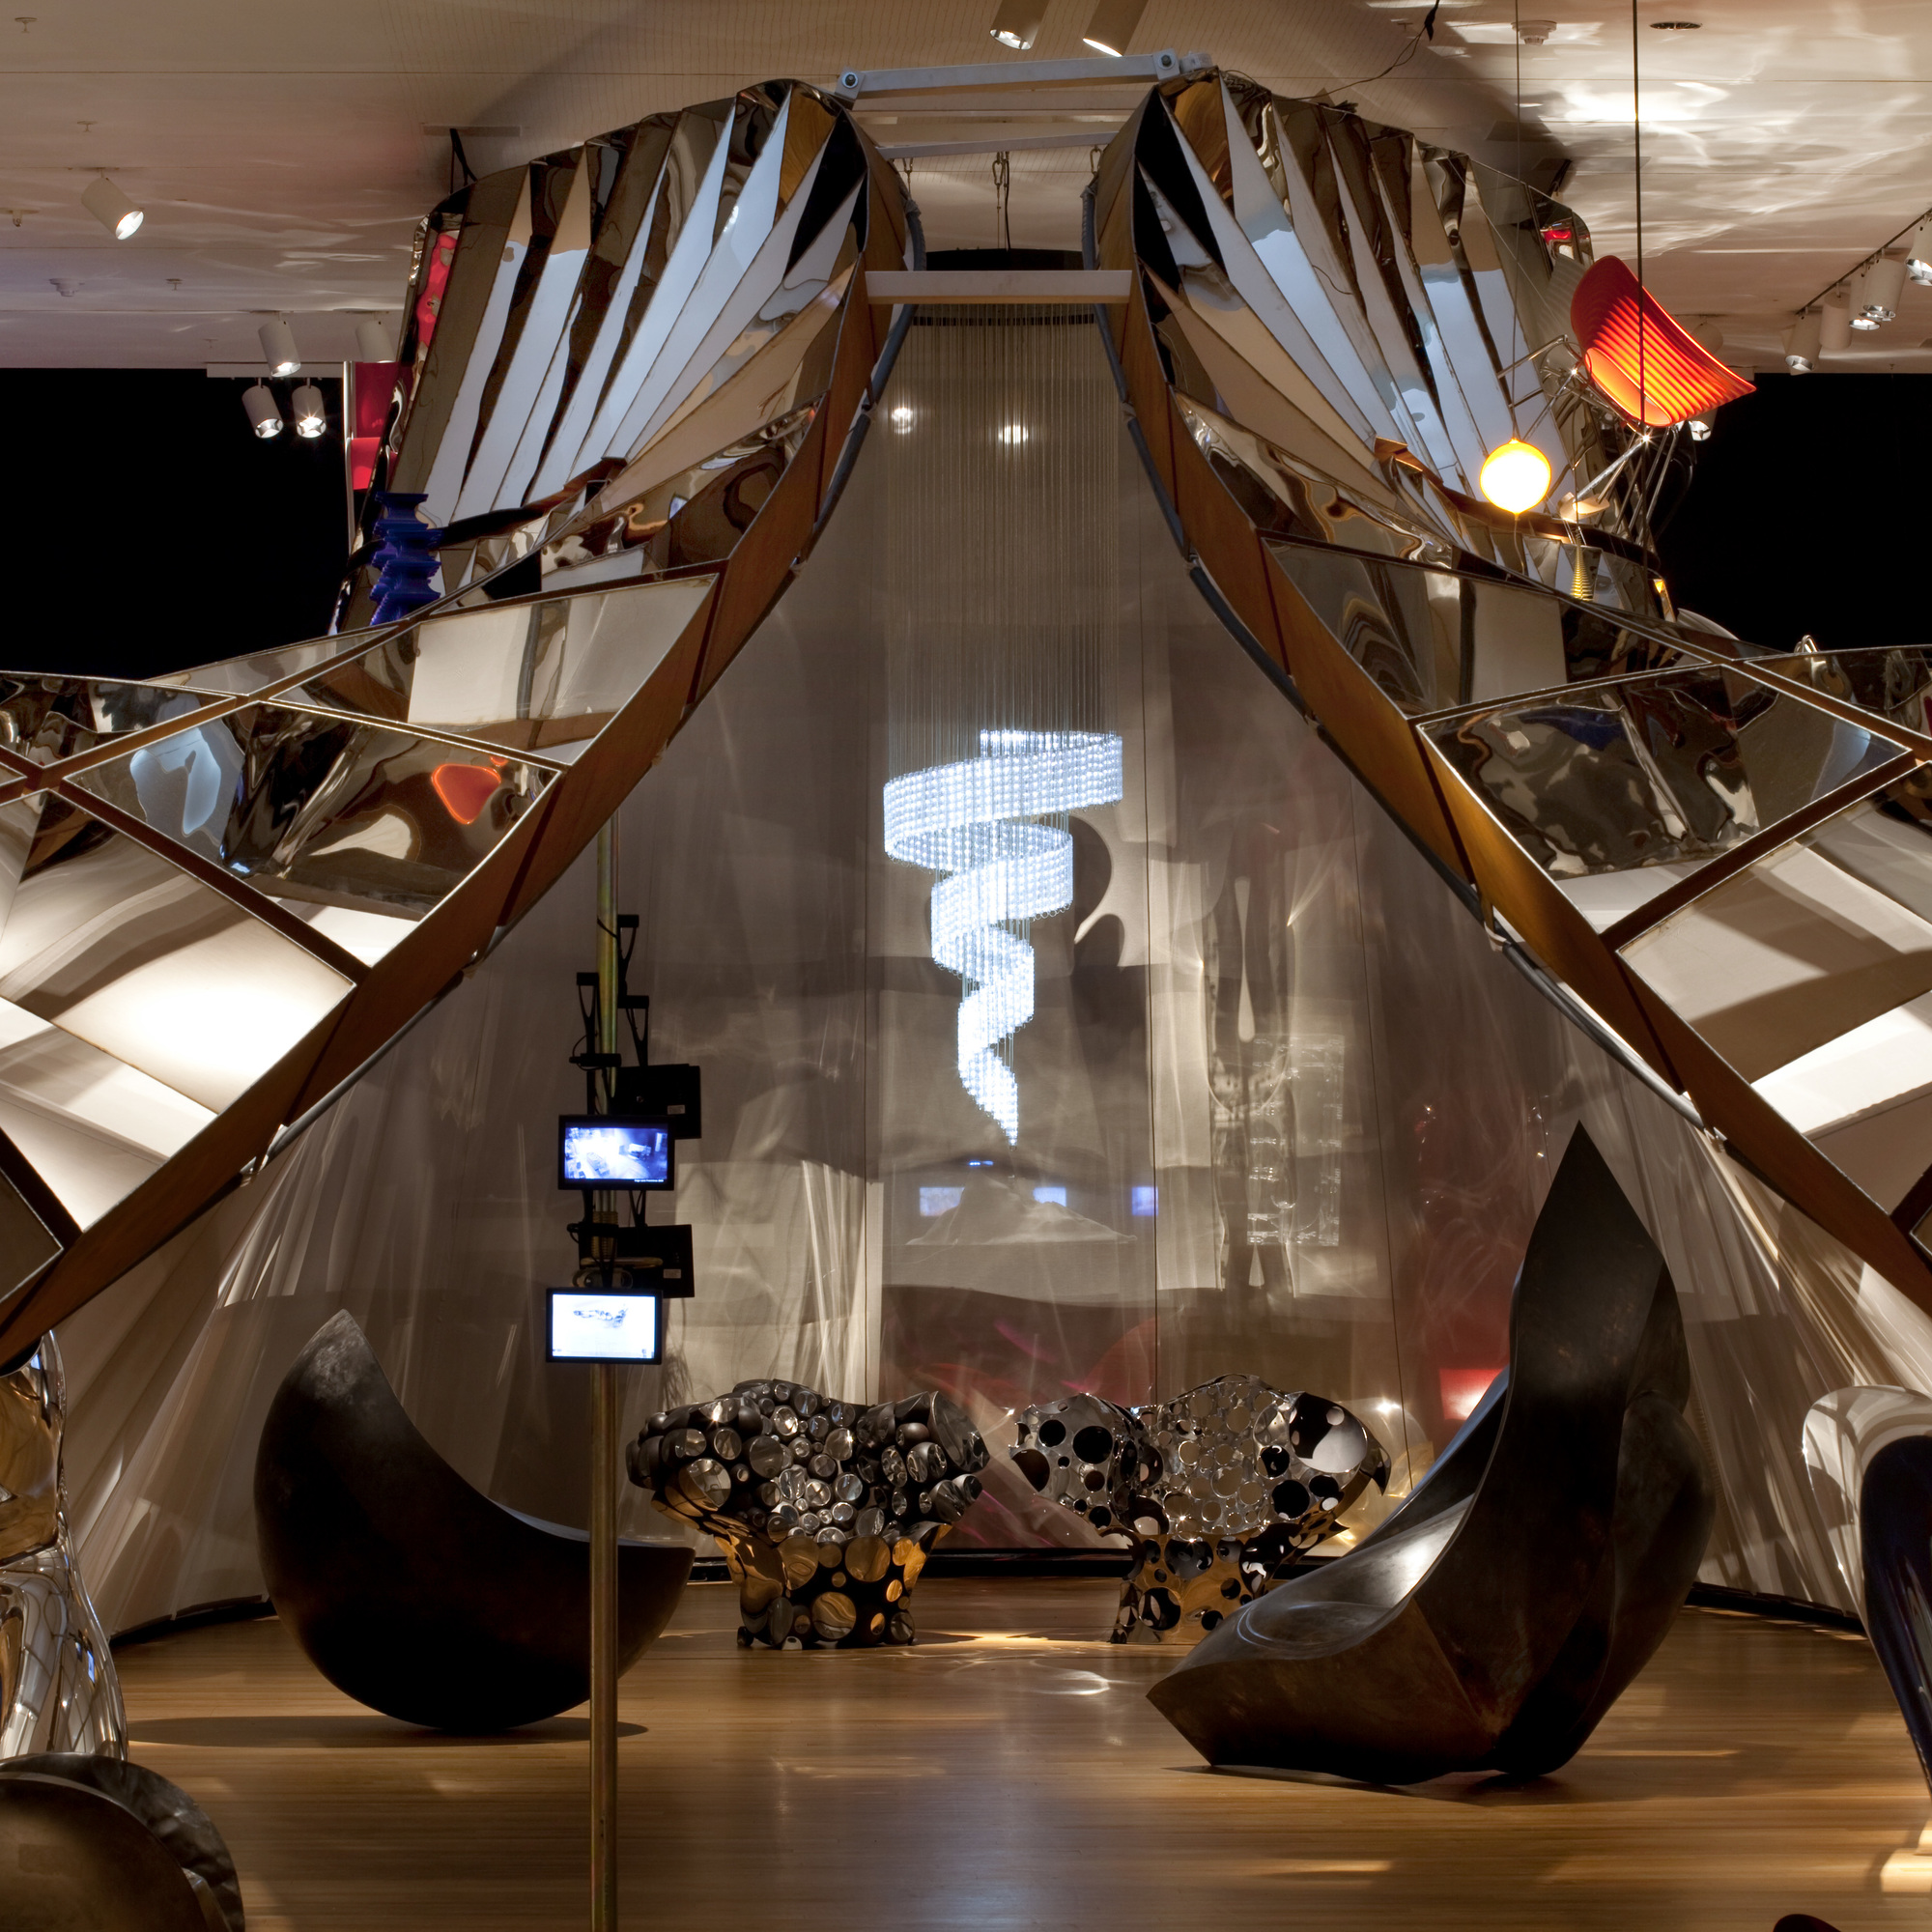 Installation view of Ron Arad: No Discipline at The Museum of Modern Art. Photo: Jason Mandella